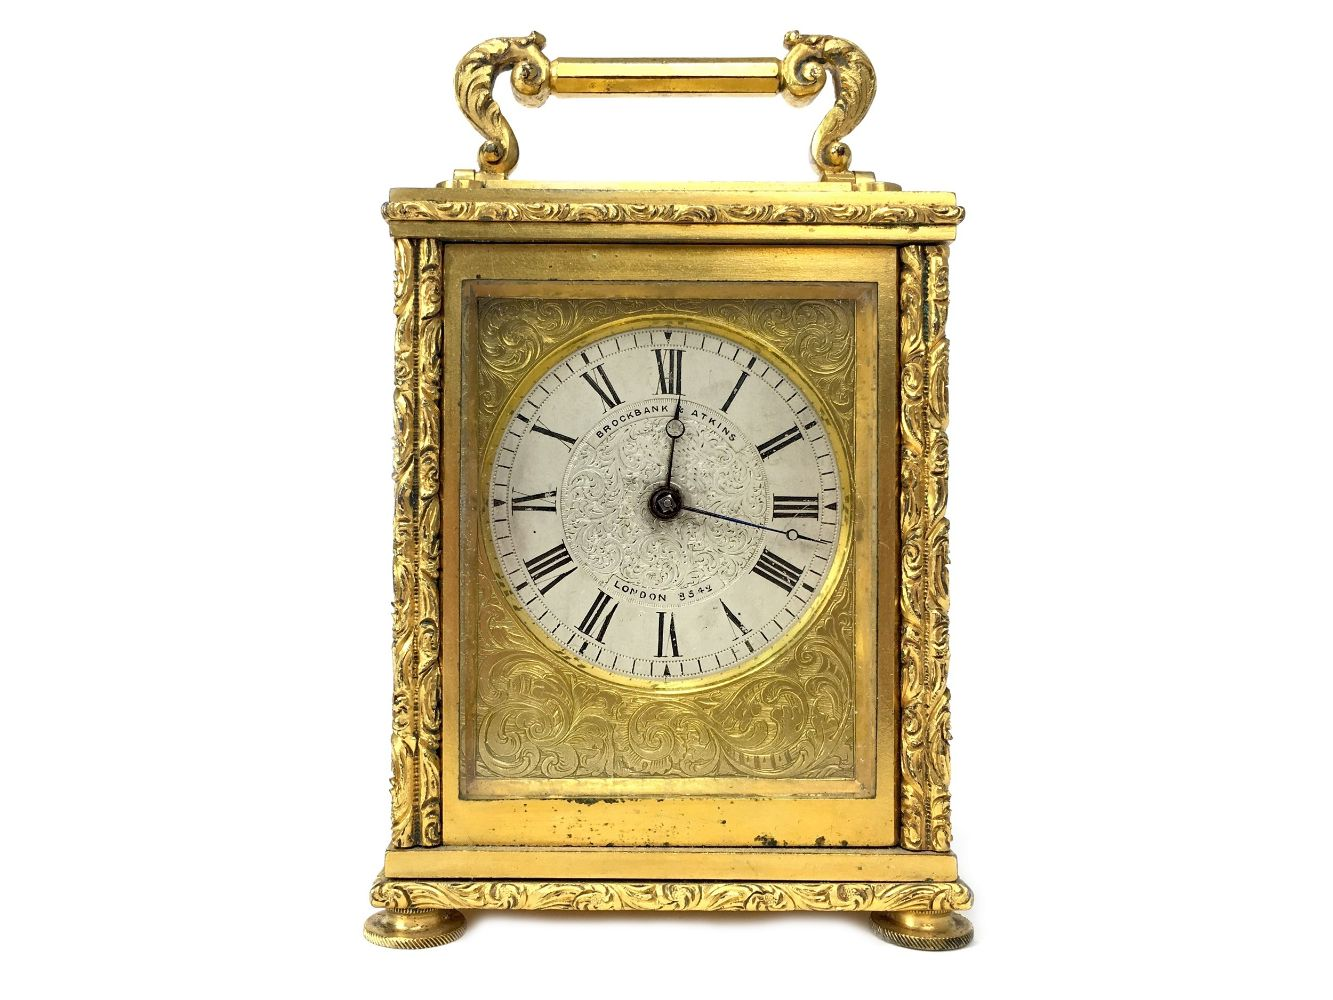 The Clocks, Cameras Scientific & Musical Instruments Auction